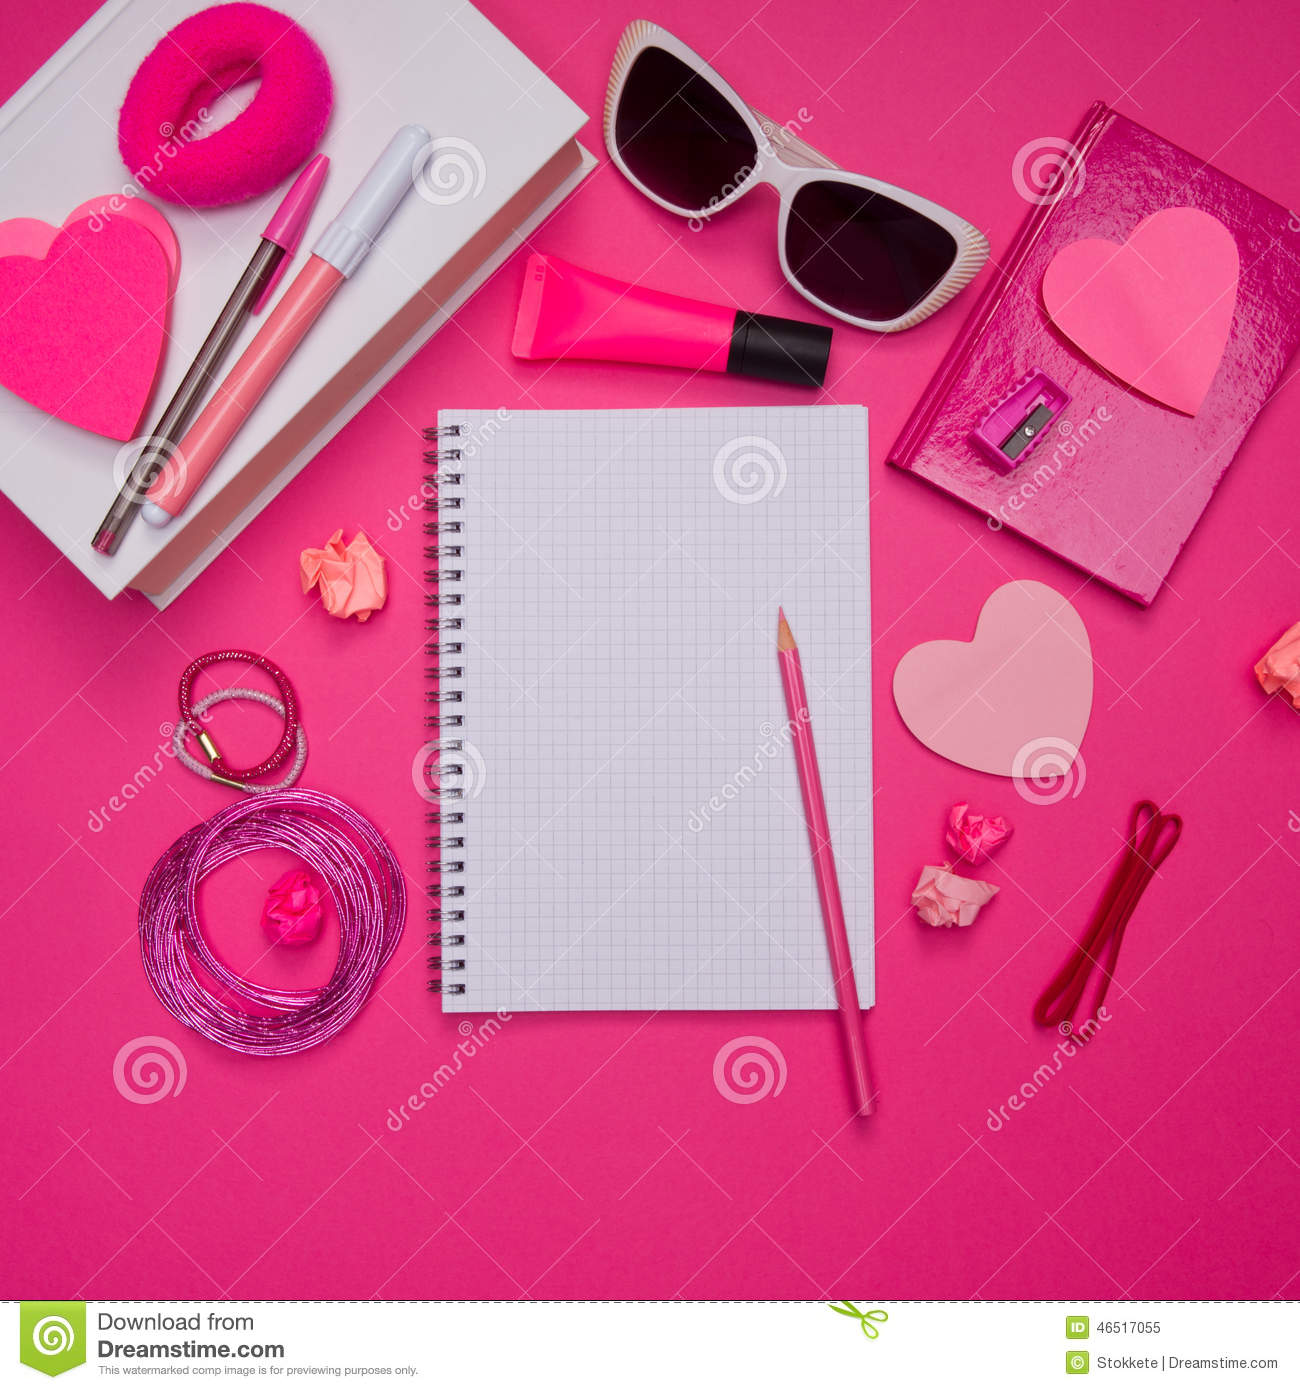 Awesome Cute Binder Wallpapers That Are Printable Girly Pink Desktop And Stationery Stock Image Image Of